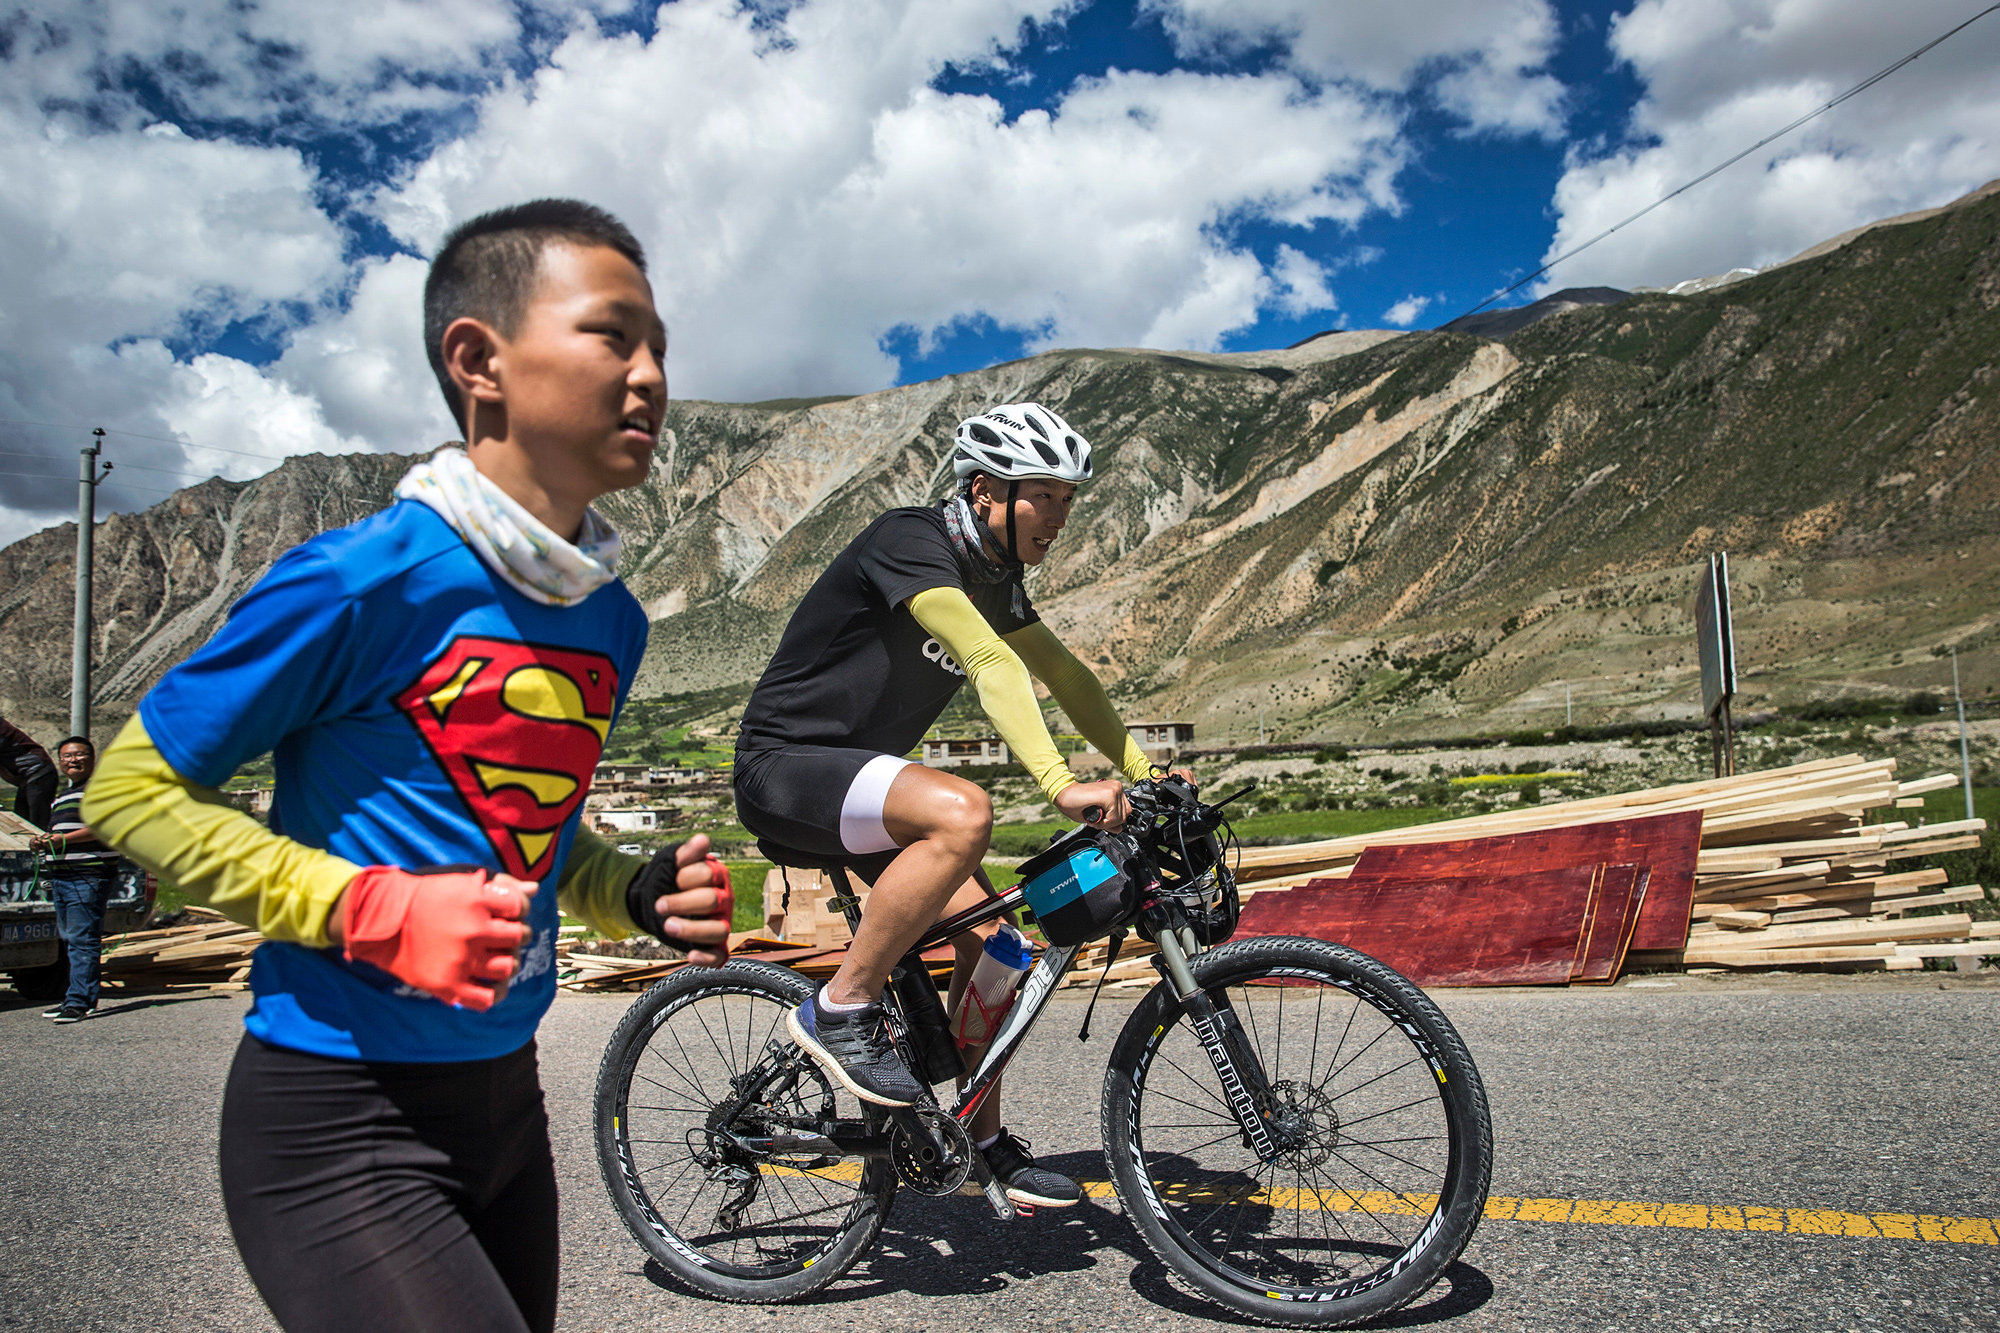 On the 16th day of the trip, on the way from Baxoi county to Rawu town, in Qamdo, Chao's bike chain broke, July 30. Unable to fix it, they ask a car to take the bike to a shop 124 miles away to be repaired. Chao and Runxi take turns riding Runxi's bike every one and half miles. While one bikes, the other one runs, at an altitude of over 13,000 feet. They do this for 12 miles until an injured biker lends them her bike.